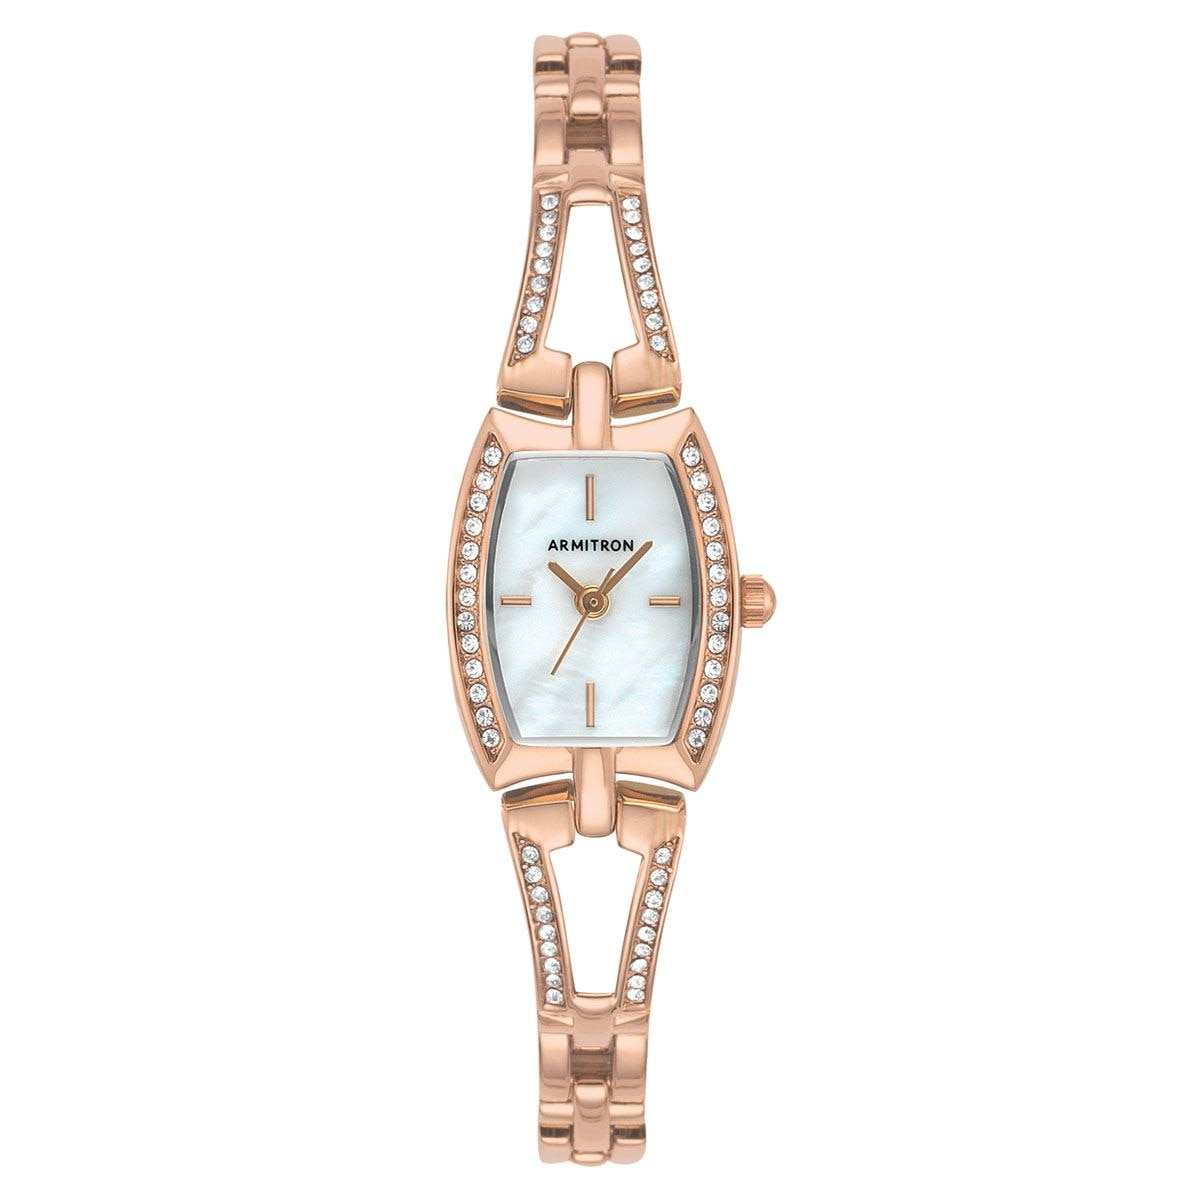 Reloj armitron dress dama 755502mprg  - Sanborns